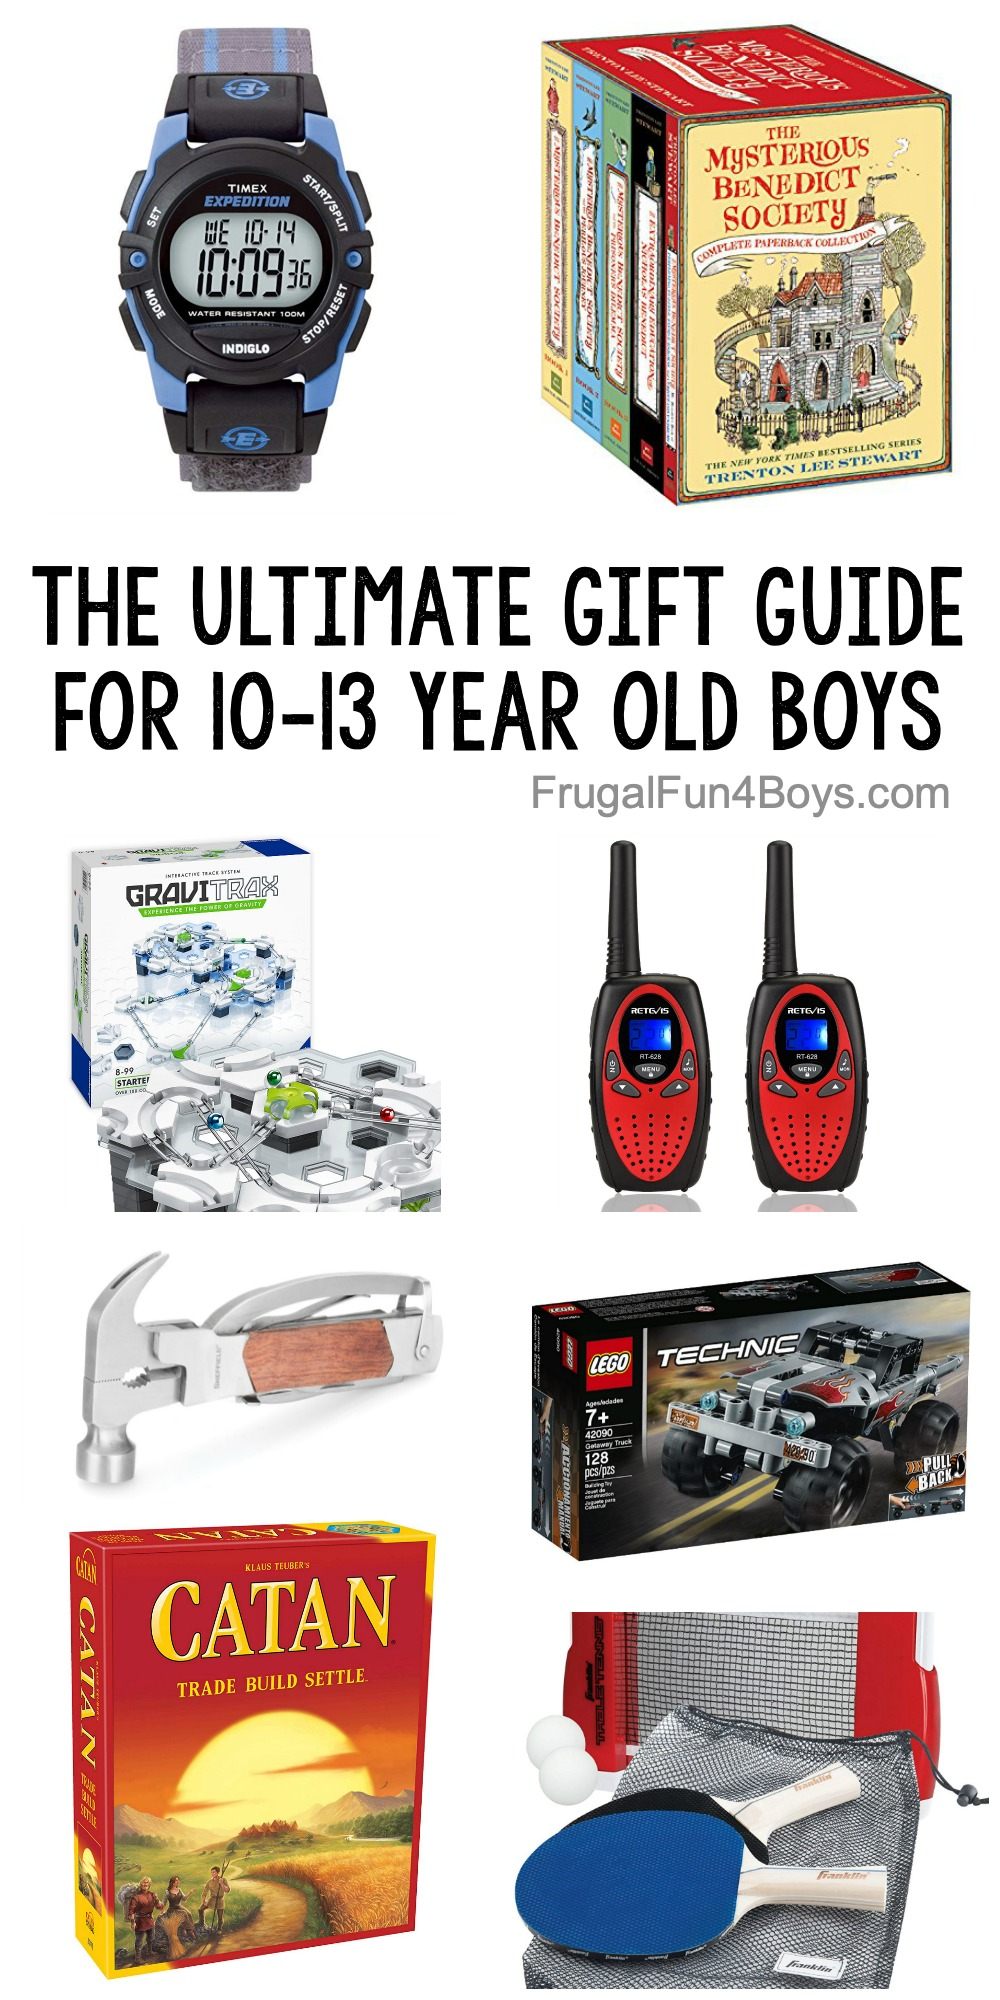 The Ultimate Gift Guide for 10-13 Year Old Boys